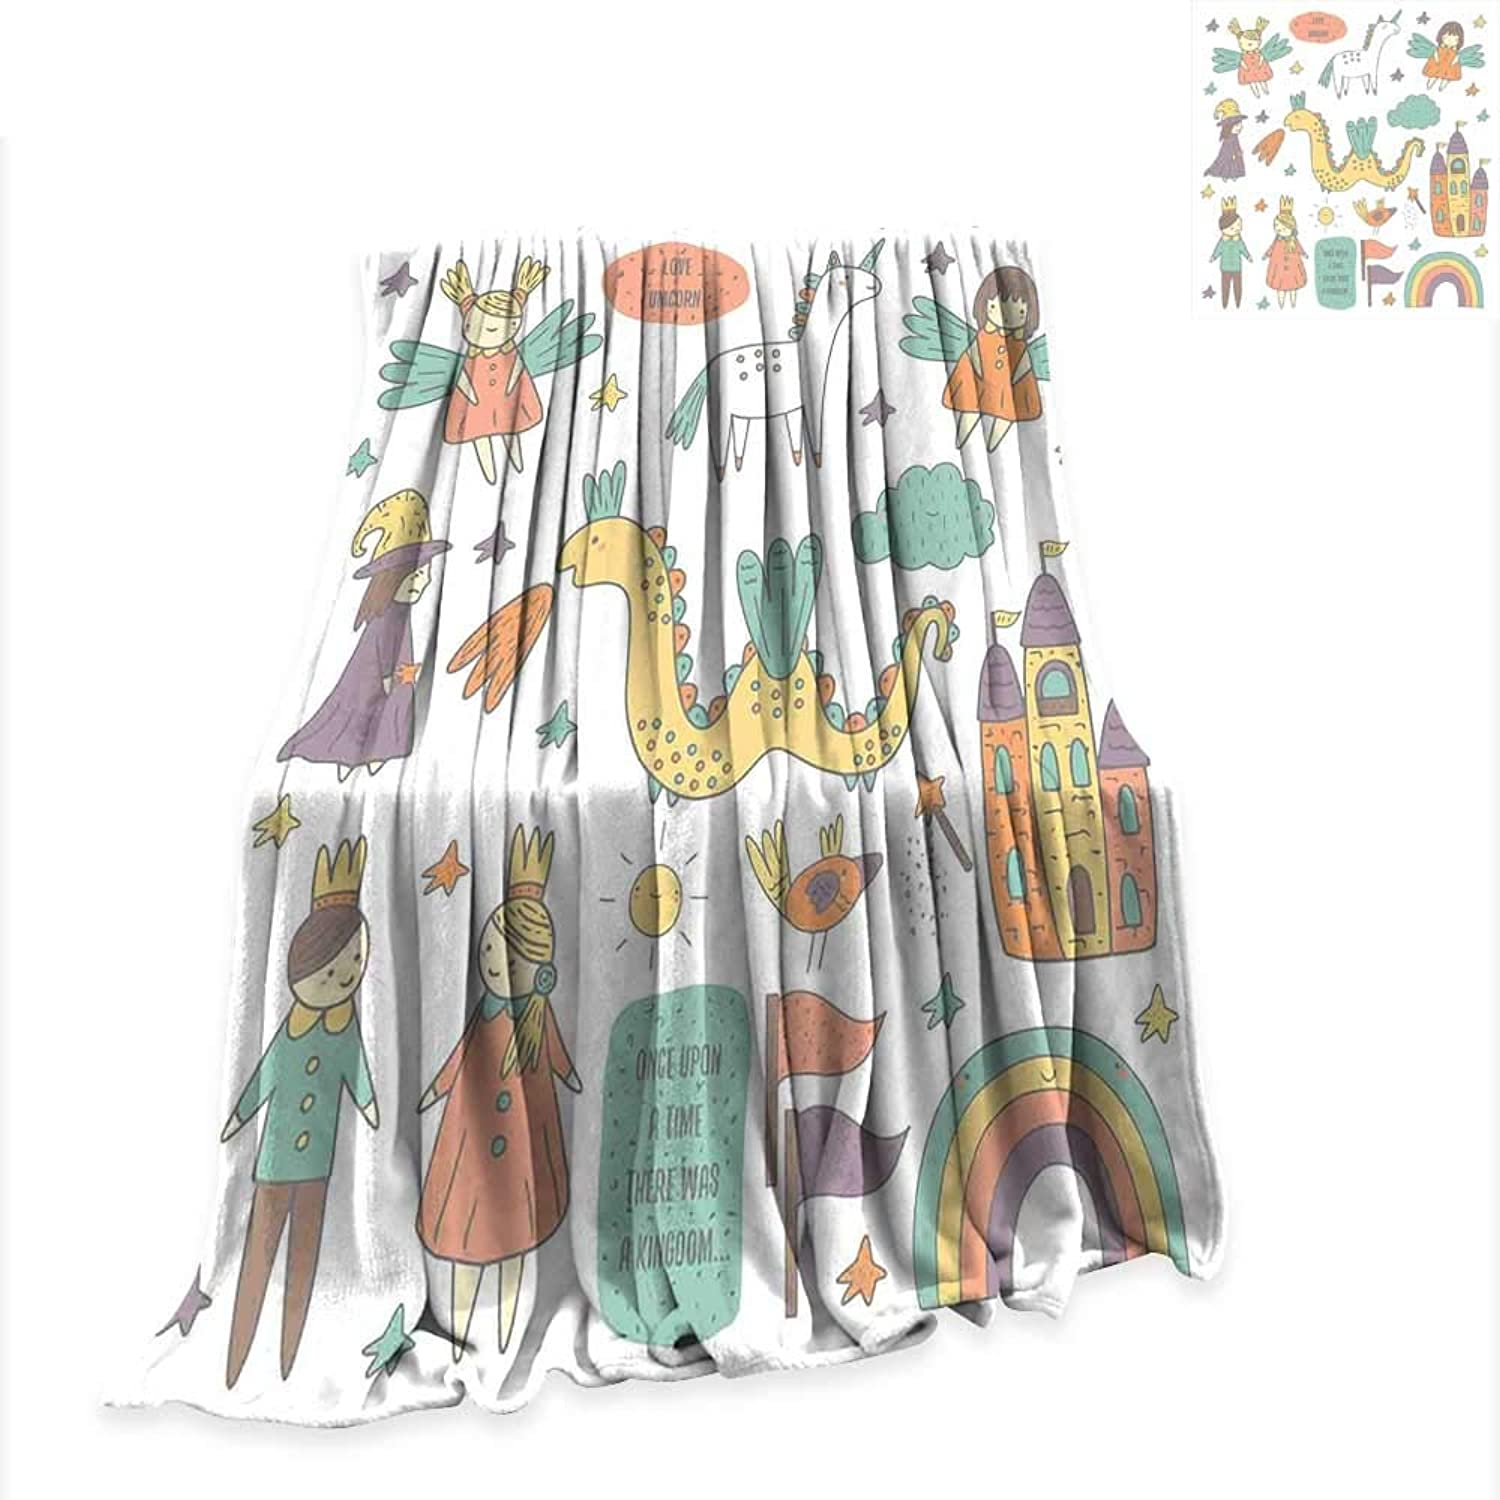 RenteriaDecor Blanket Fantasy,Doodle Style Dragon Fairies Royalty and Wizard Middle Ages Heroic Legend Elements,Multicolor Digital Printing W51 x L60 inch